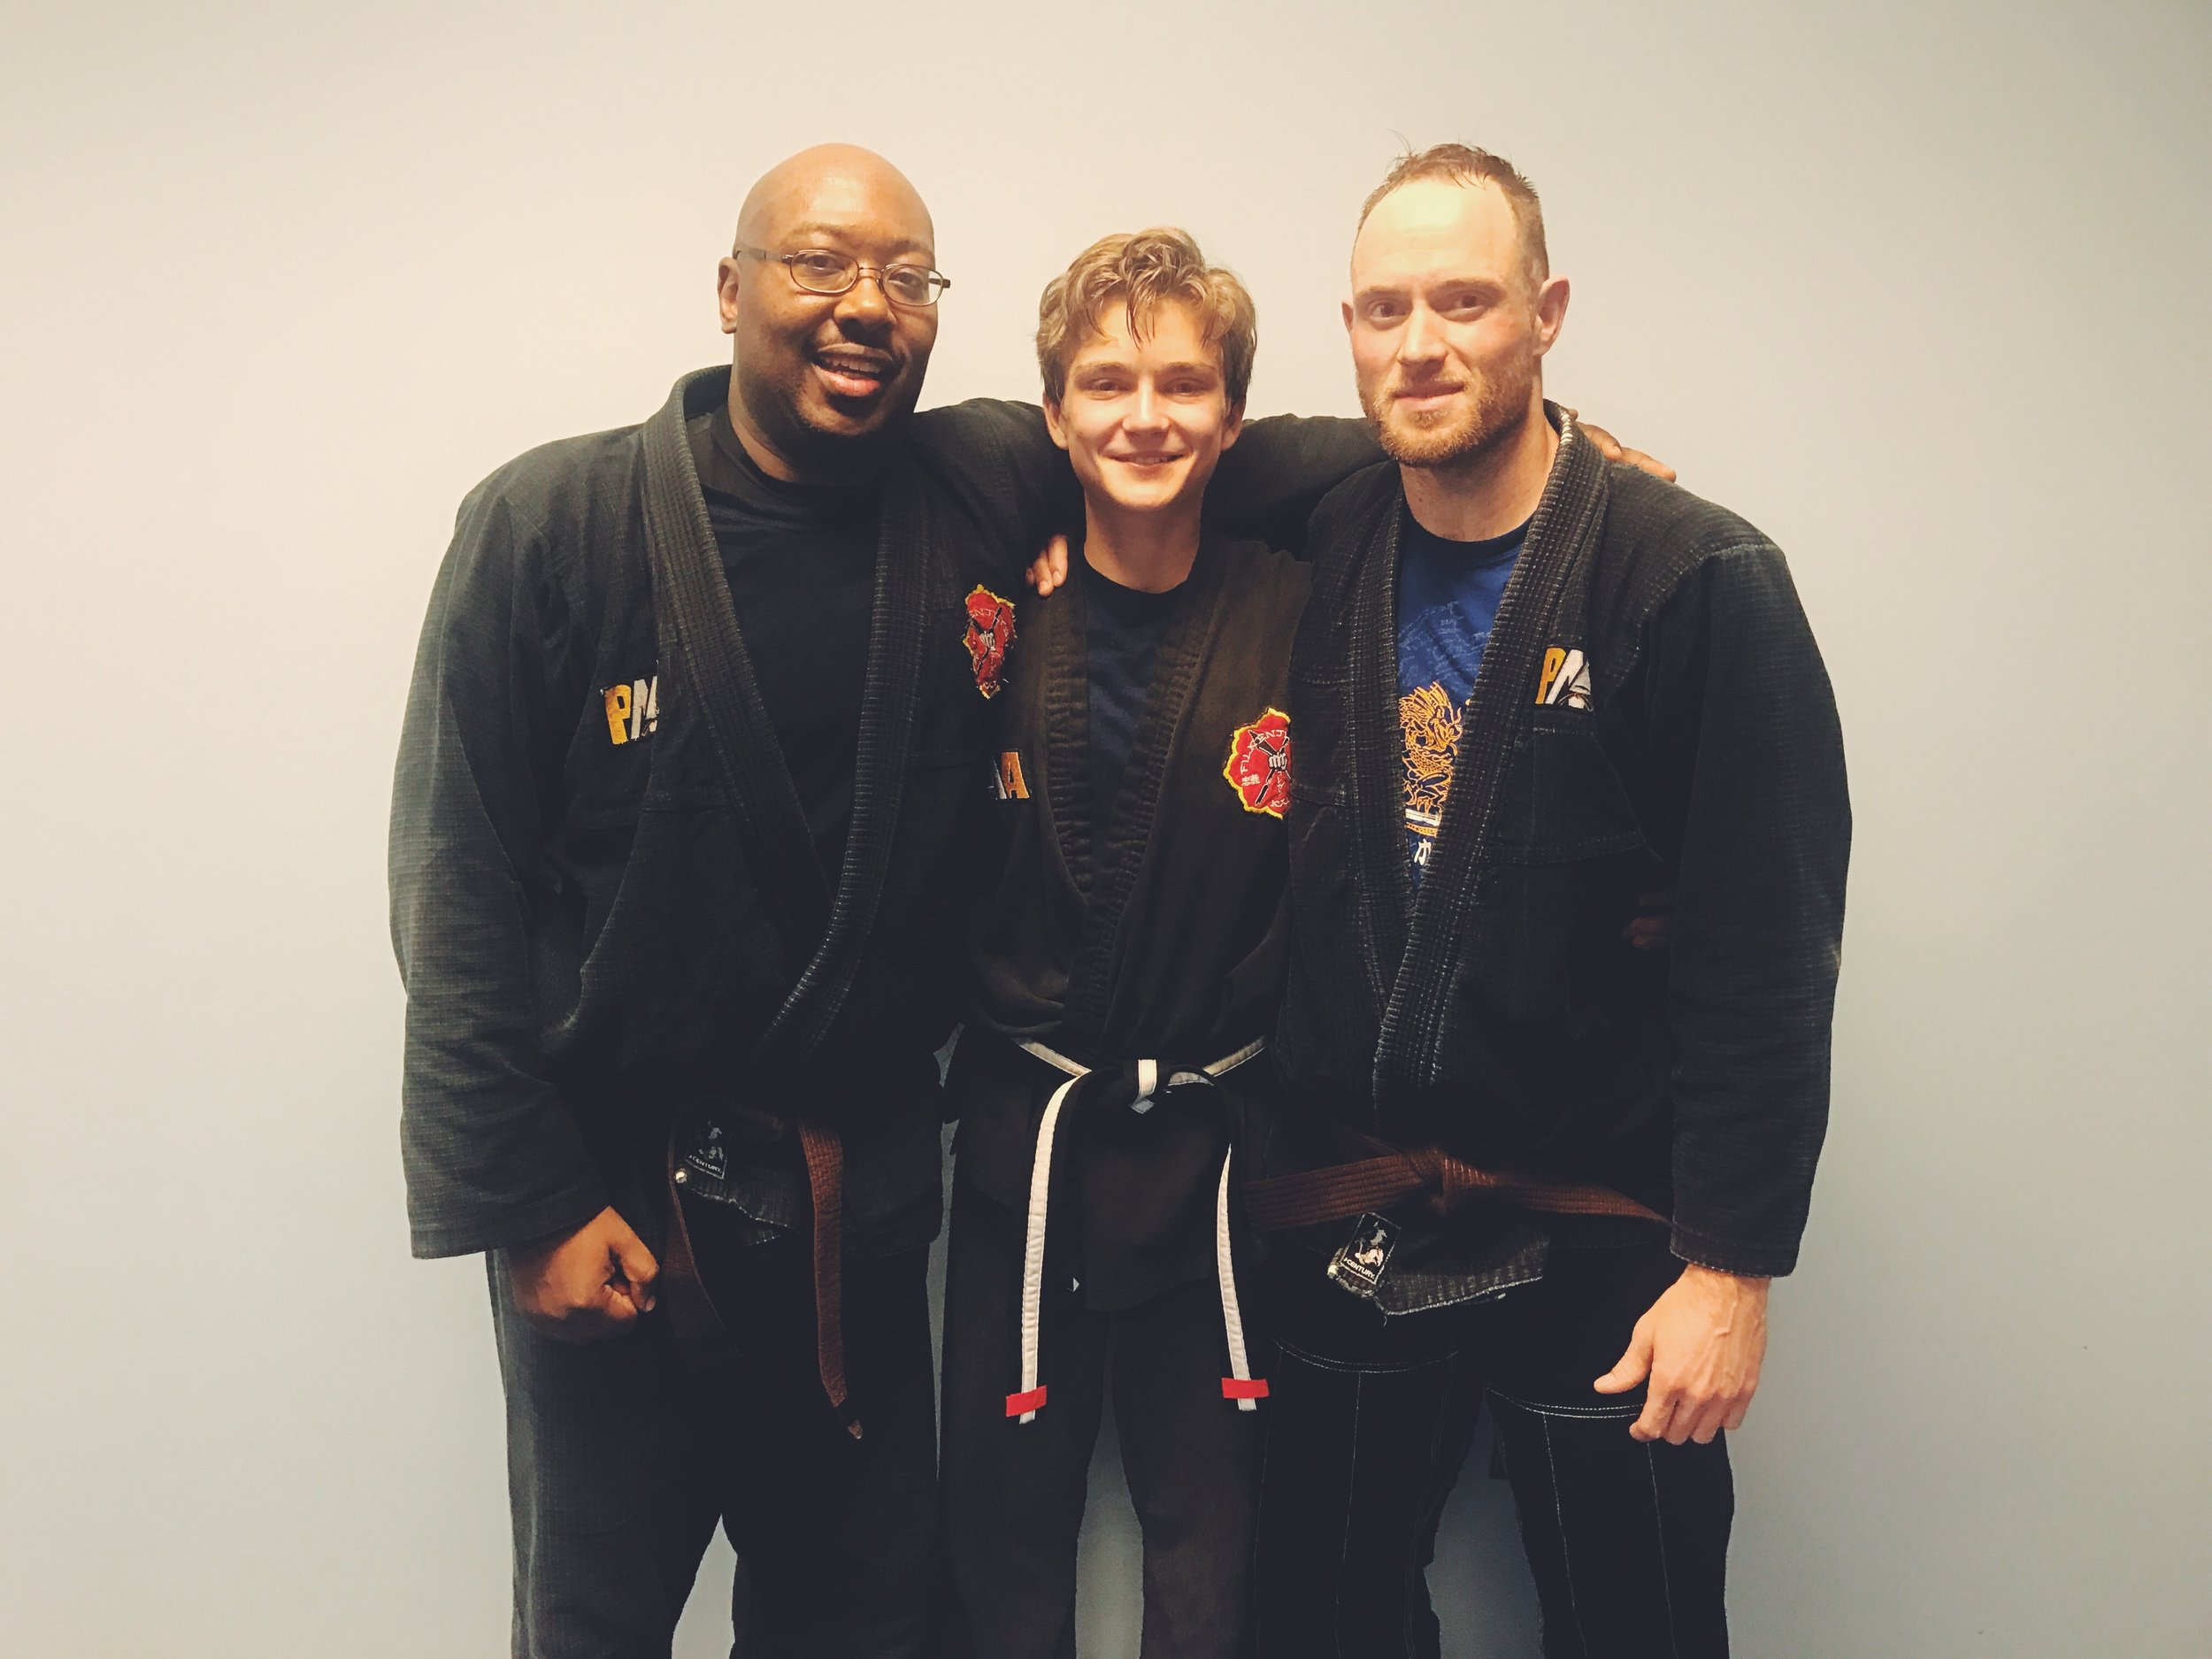 Matt alongside two of his training partners and Black Belt Test partners, Monty and Iain!